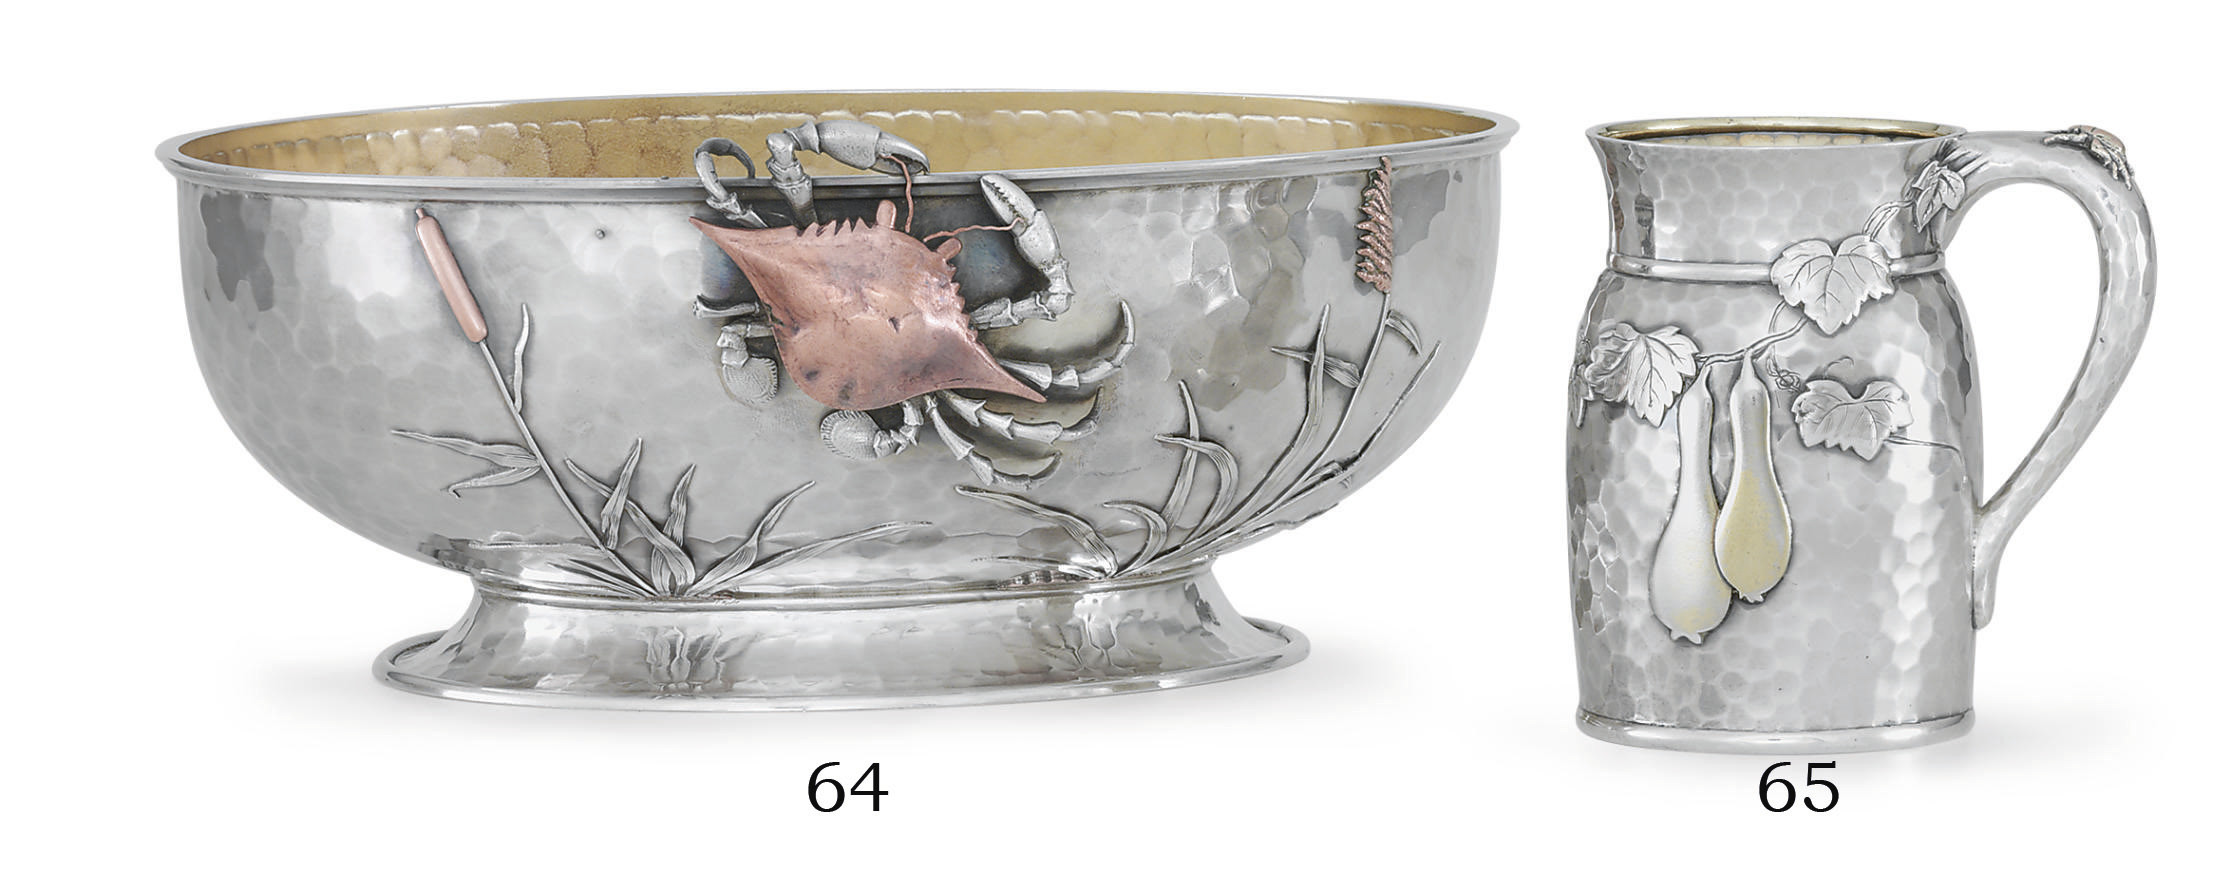 A SILVER AND MIXED-METAL CENTERPIECE BOWL